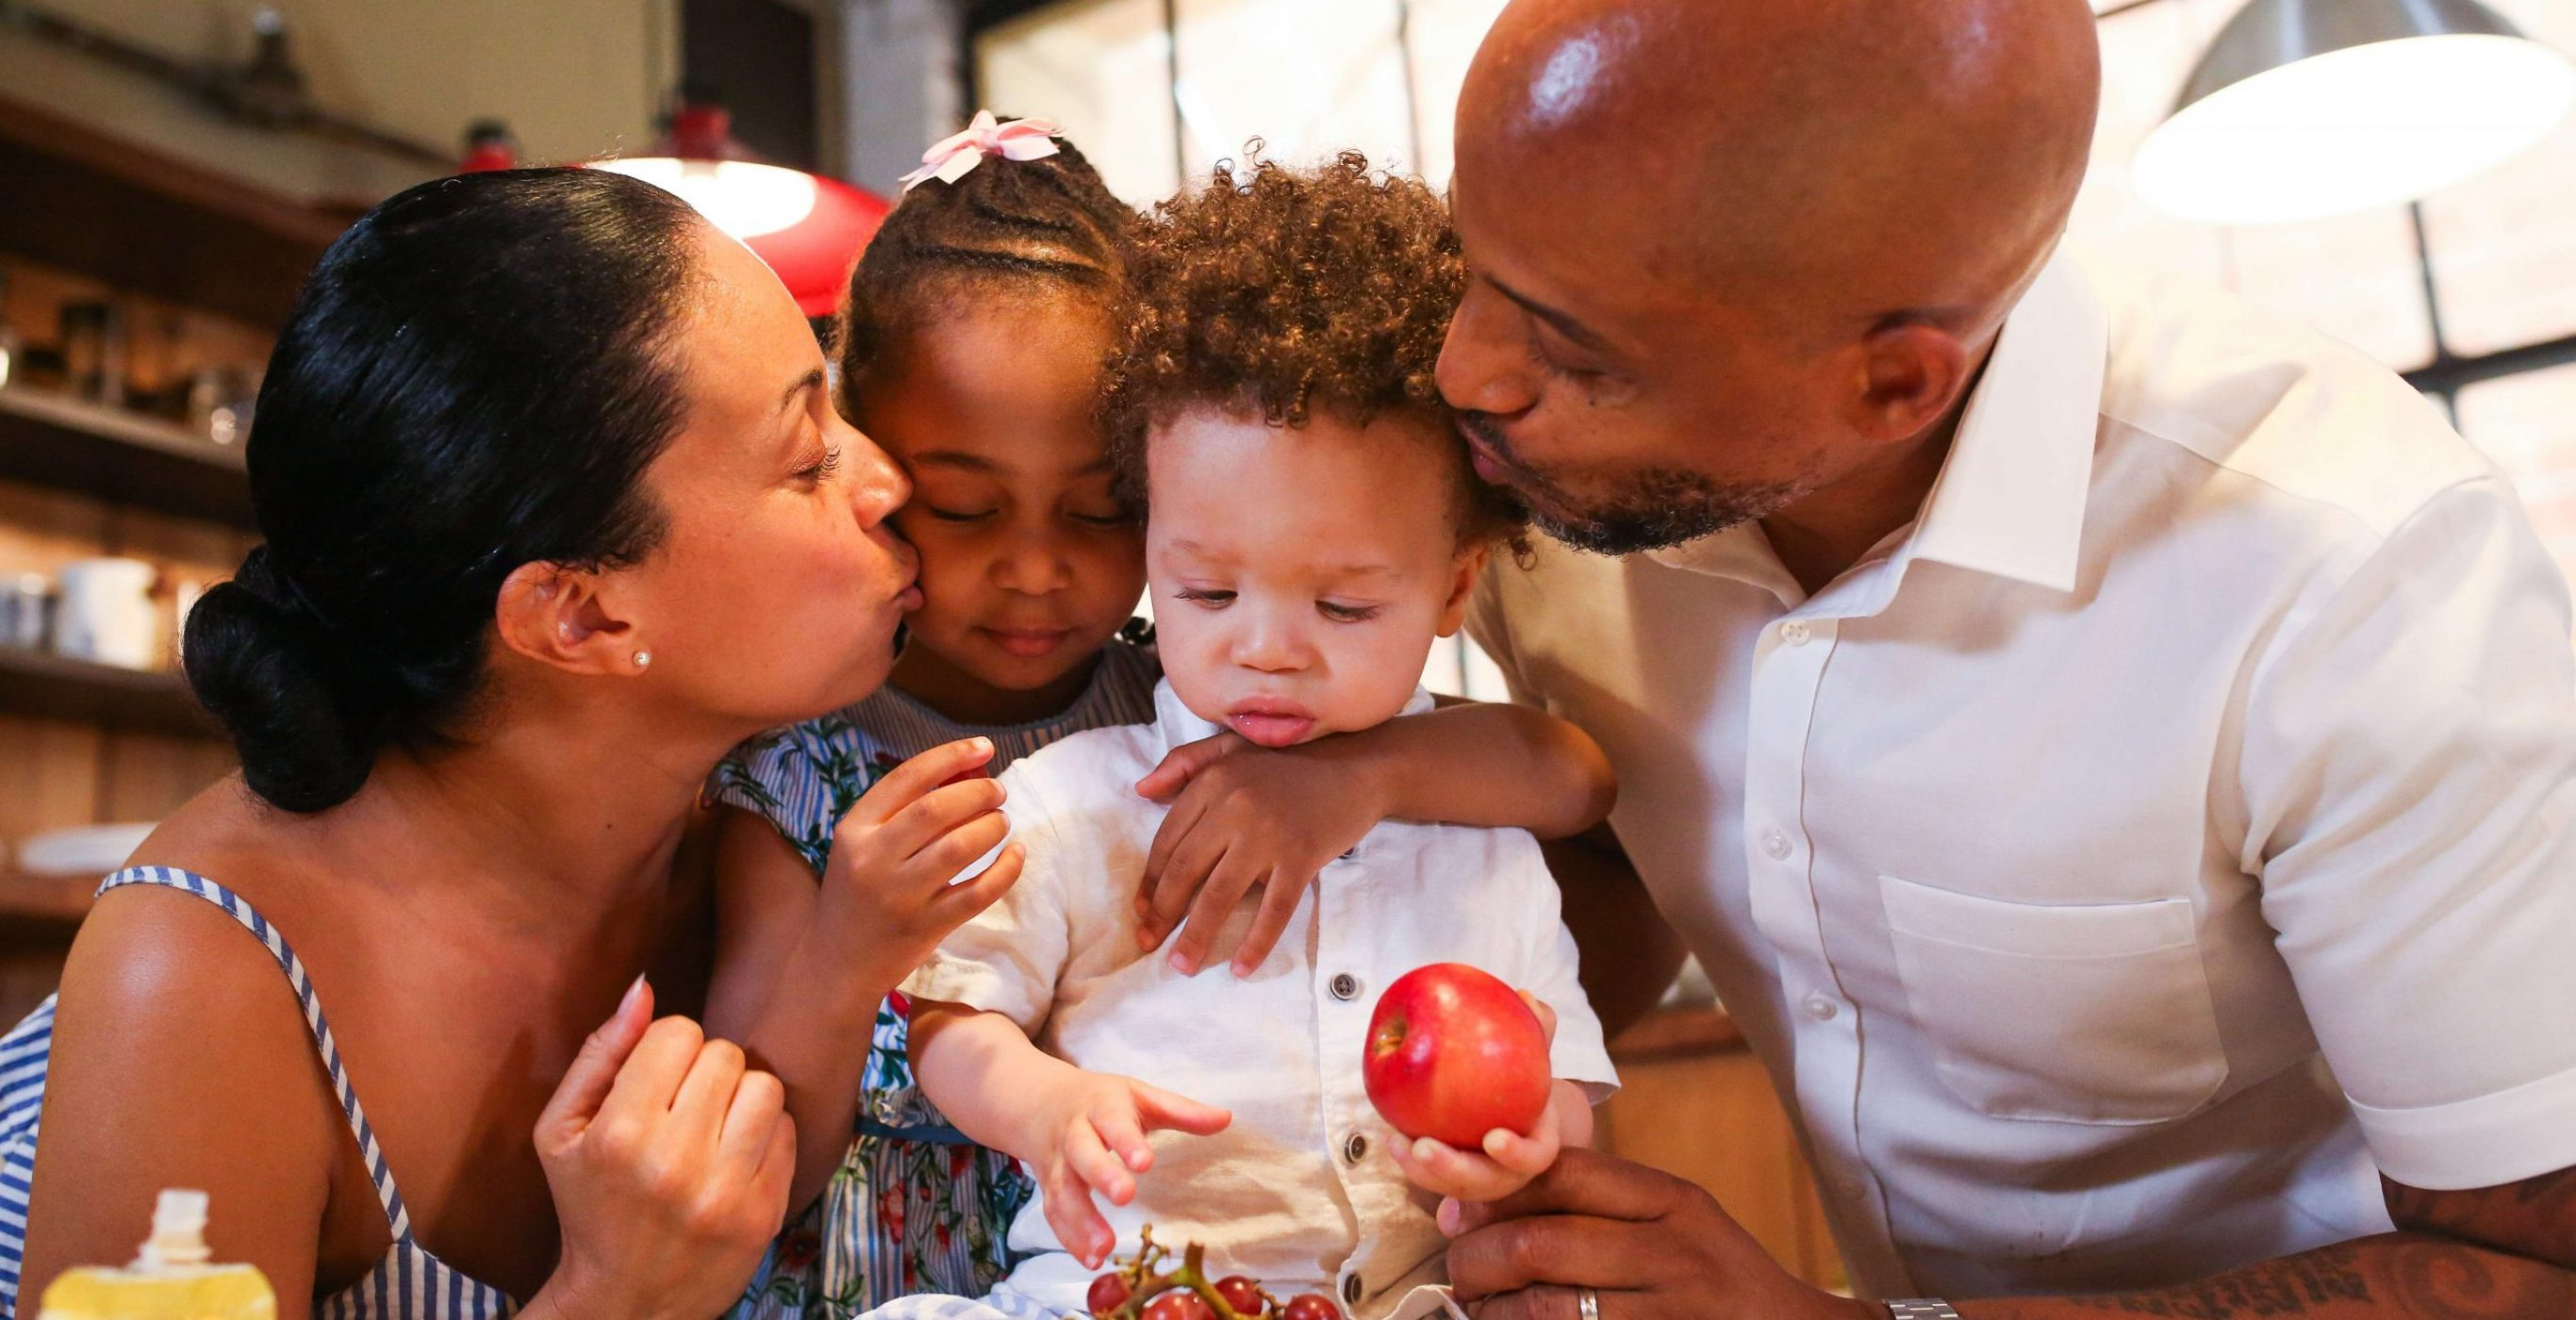 An image of a black family, including a black father, a black mother, and two black children, all hugging and kissing together, used as the featured image for the article